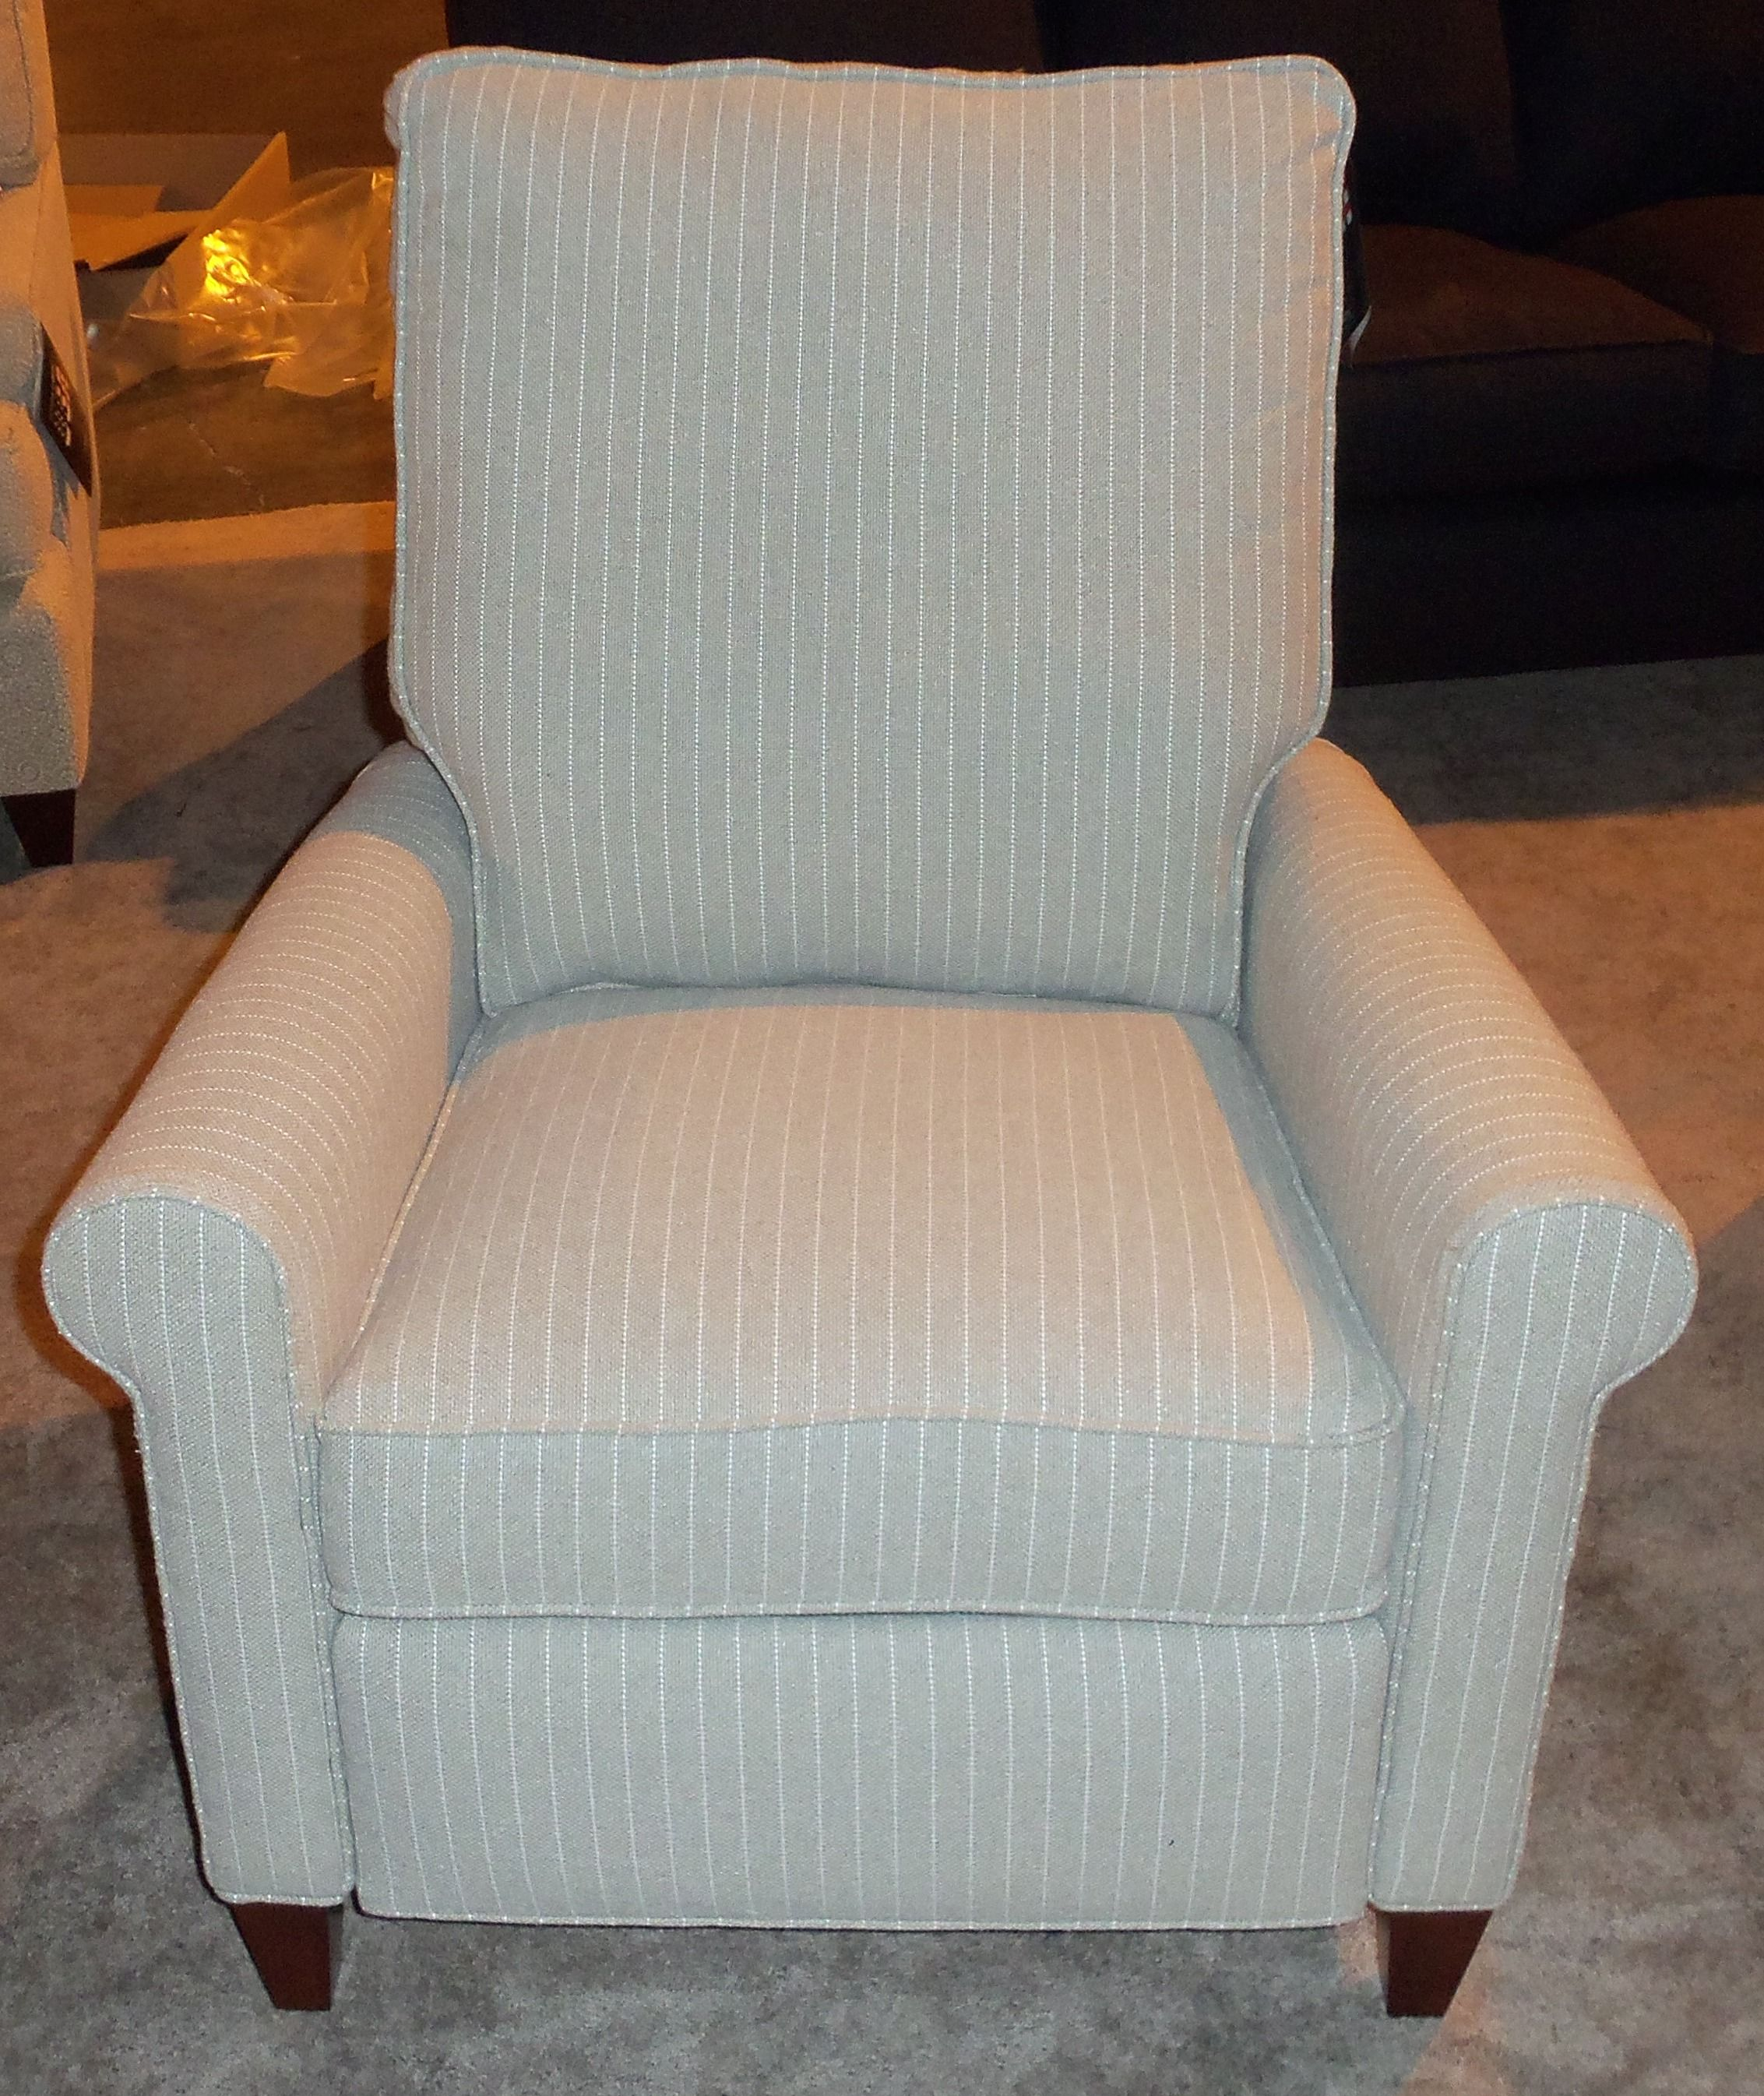 of samples product for leg comfort design recliner pin options the cd comforter high marquis